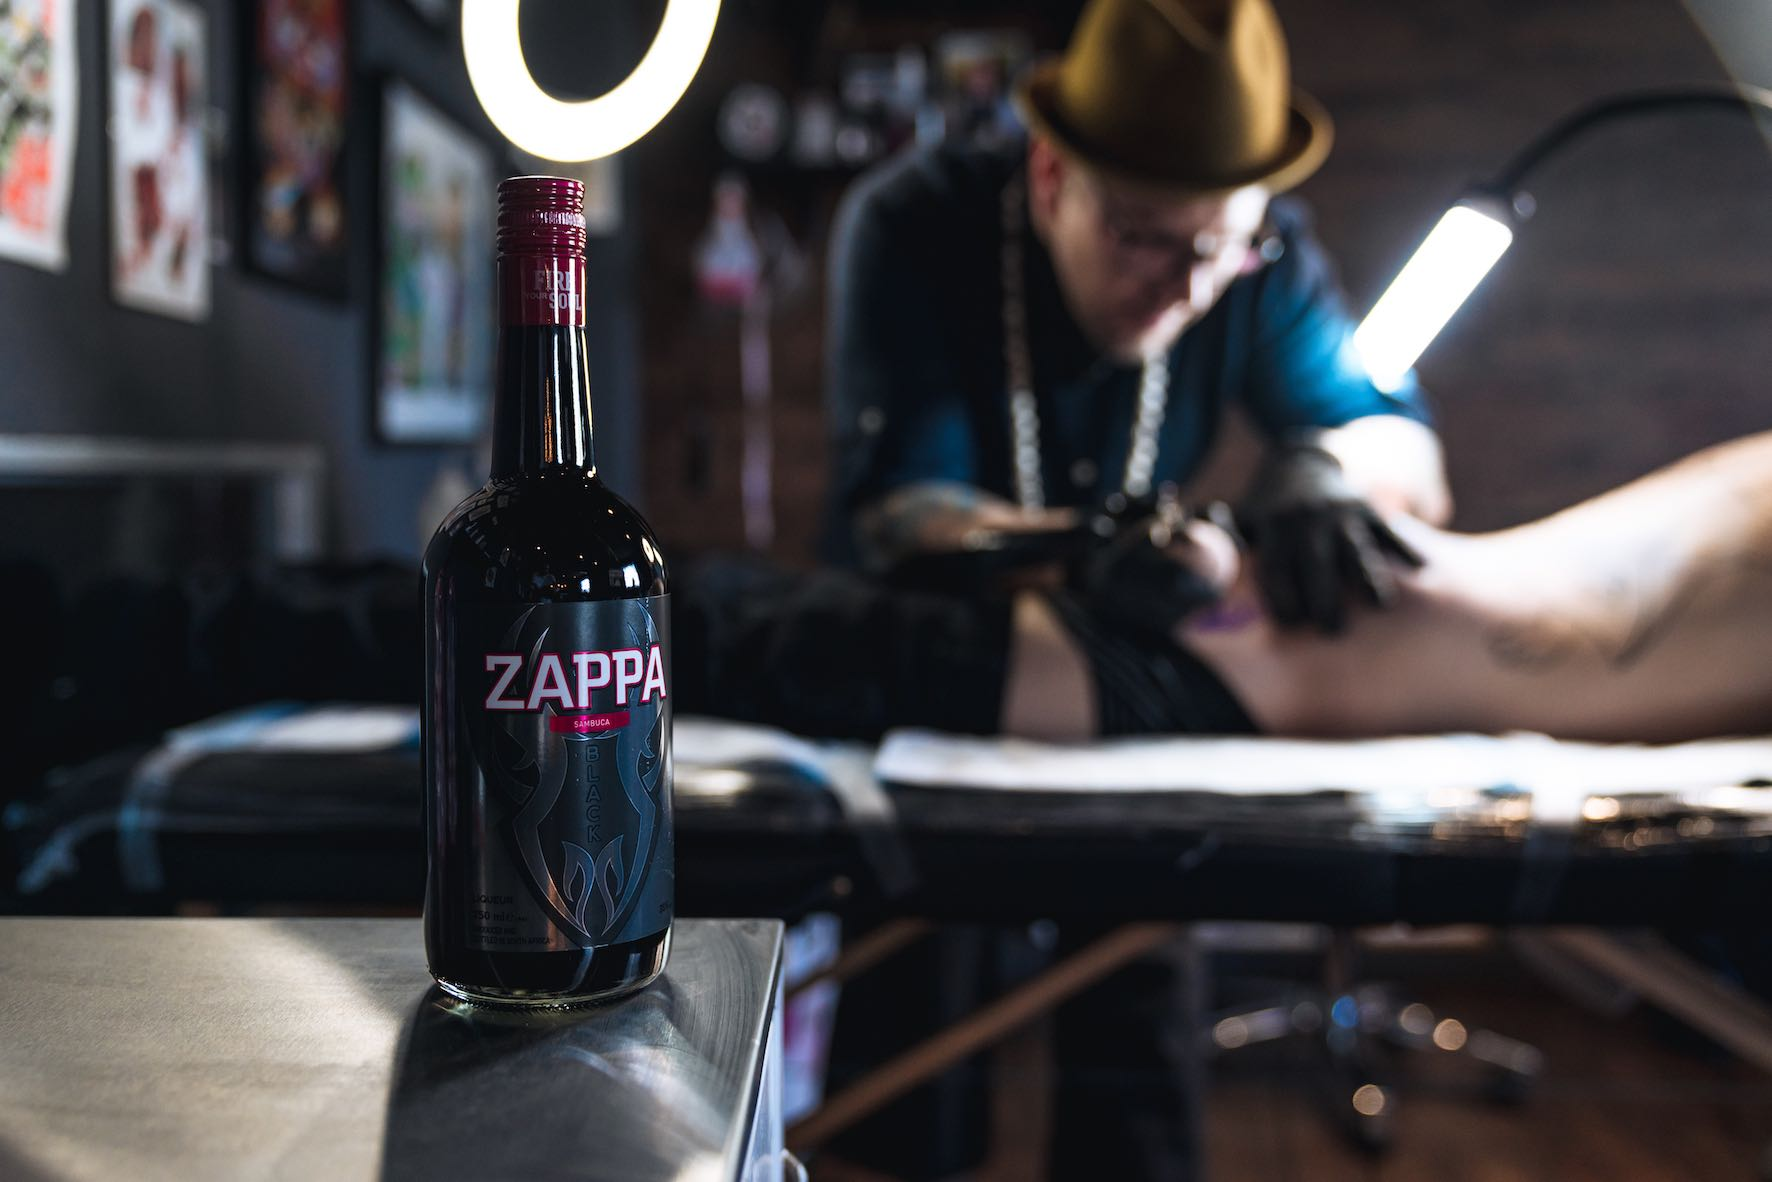 Our tattoo artist featured brought to you by Zappa Sambuca